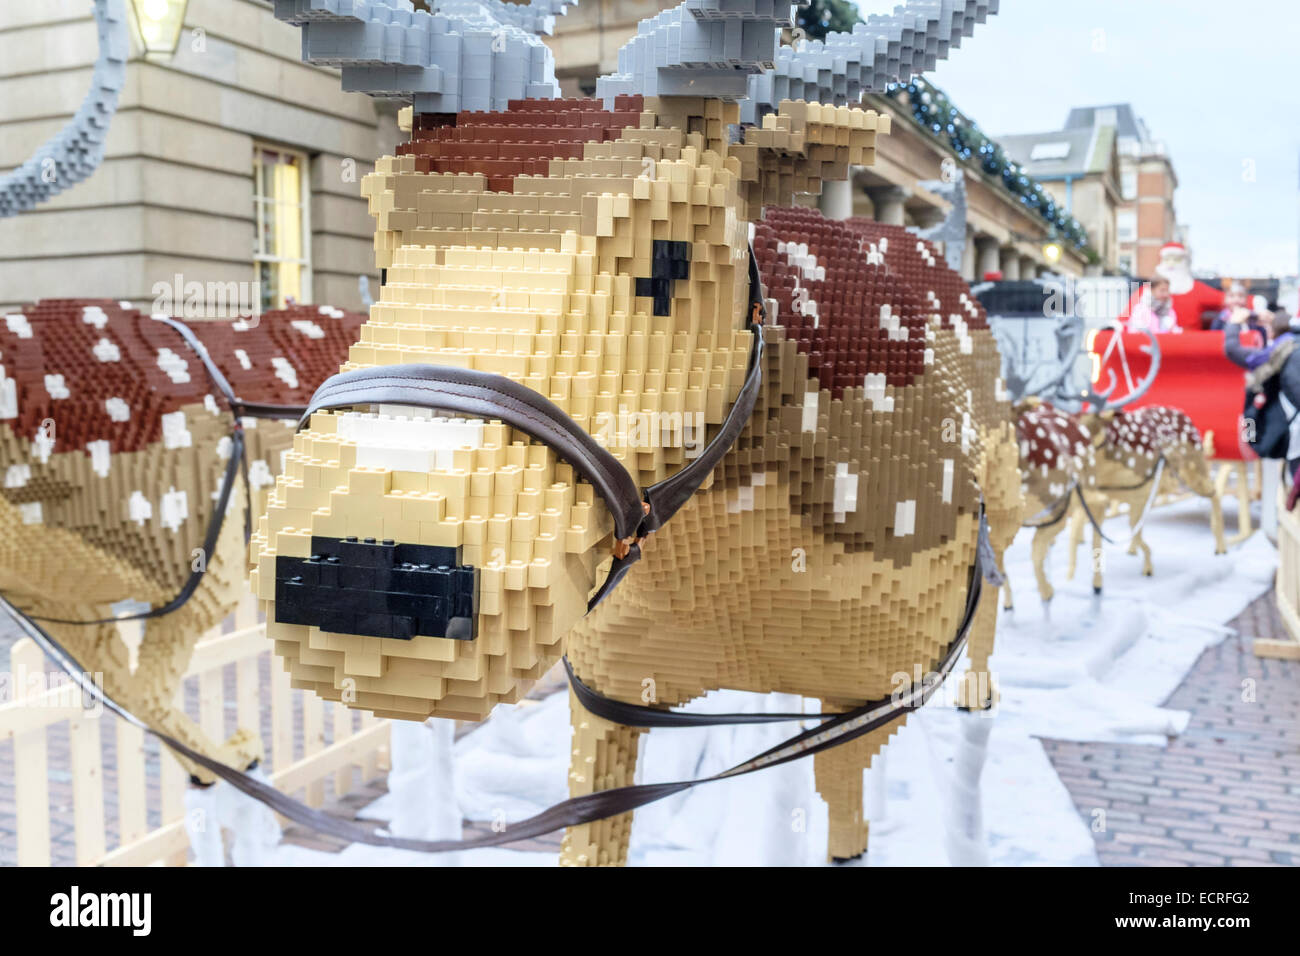 A full-size Santa's sleigh and reindeer made from 700,000 Lego bricks Covent Garden, London, - Stock Image